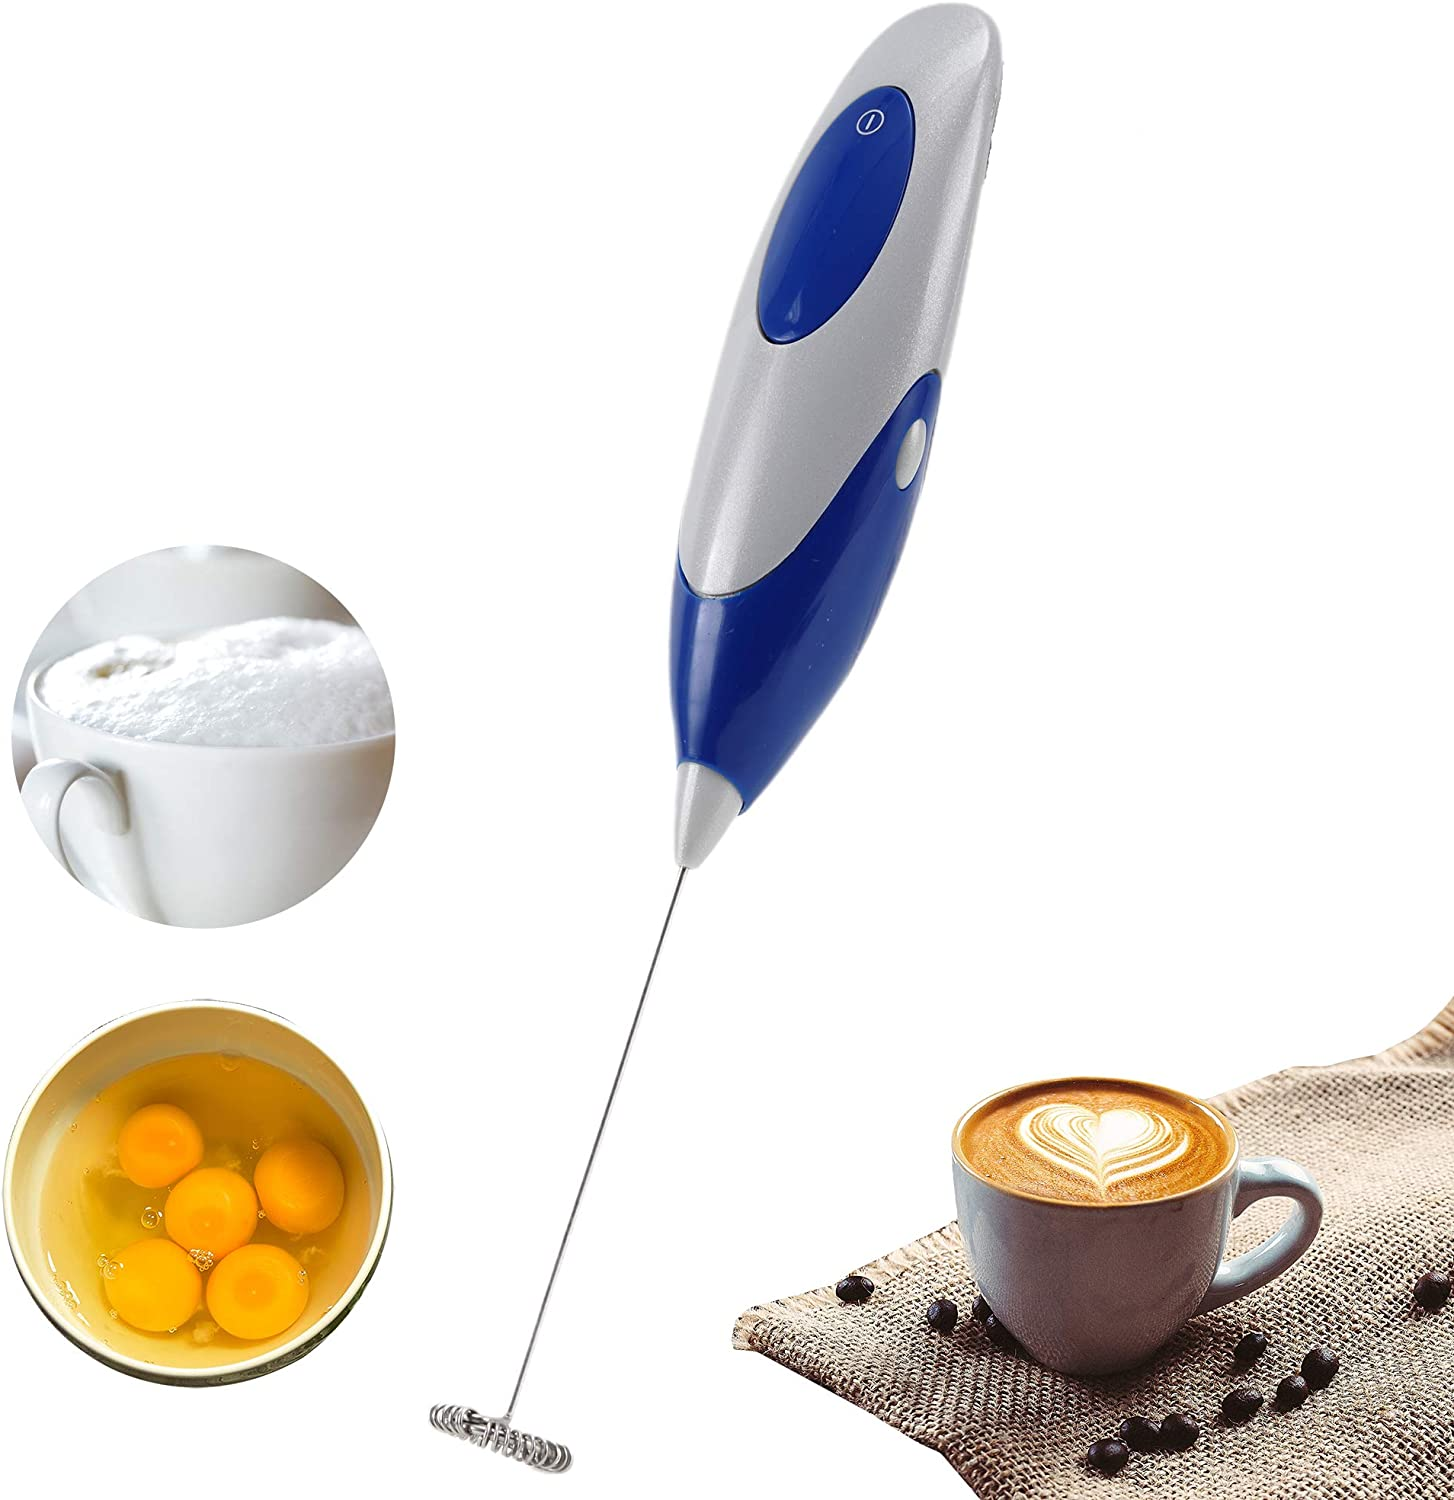 Mini Handheld Electric Blender, Electric Coffee Mixer, Milk Frother, Egg Beater, AA Battery Powered High-Speed Electric Blender (Blue)